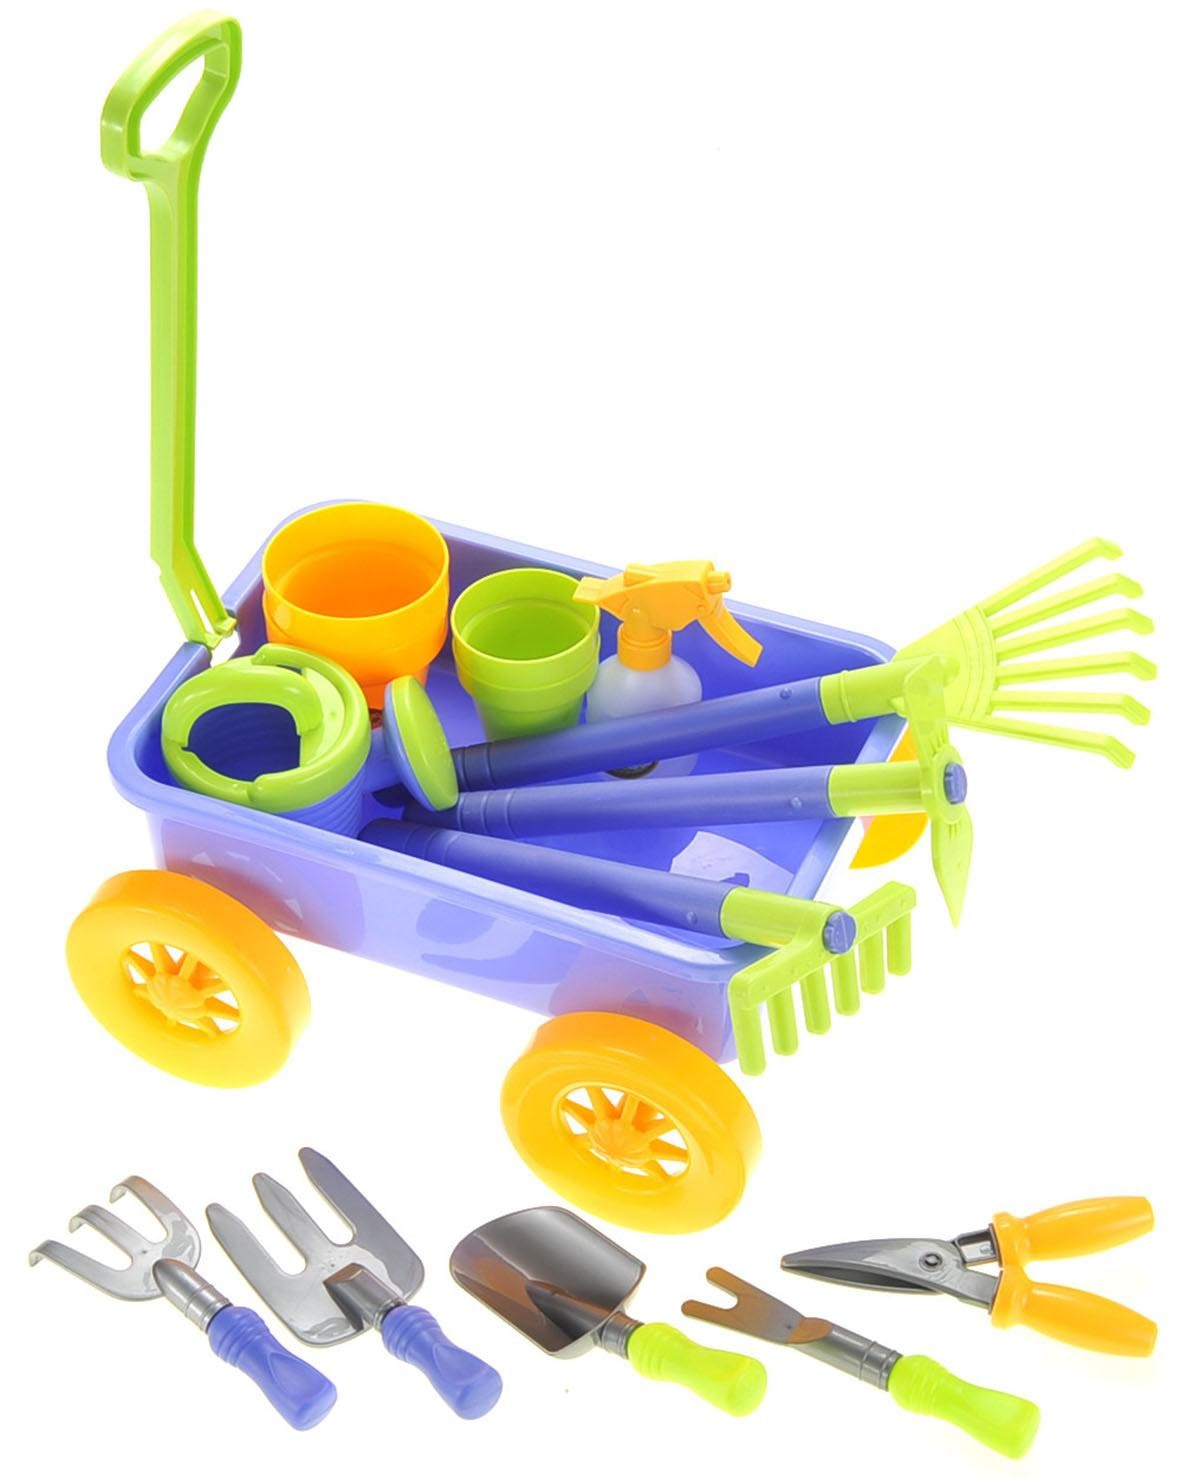 Garden Wagon U0026 Tools Toy Set For Kids With 8 Gardening Tools, 4 Pots, Water  Pail And Spray   Tool Sets   Toy Playsets